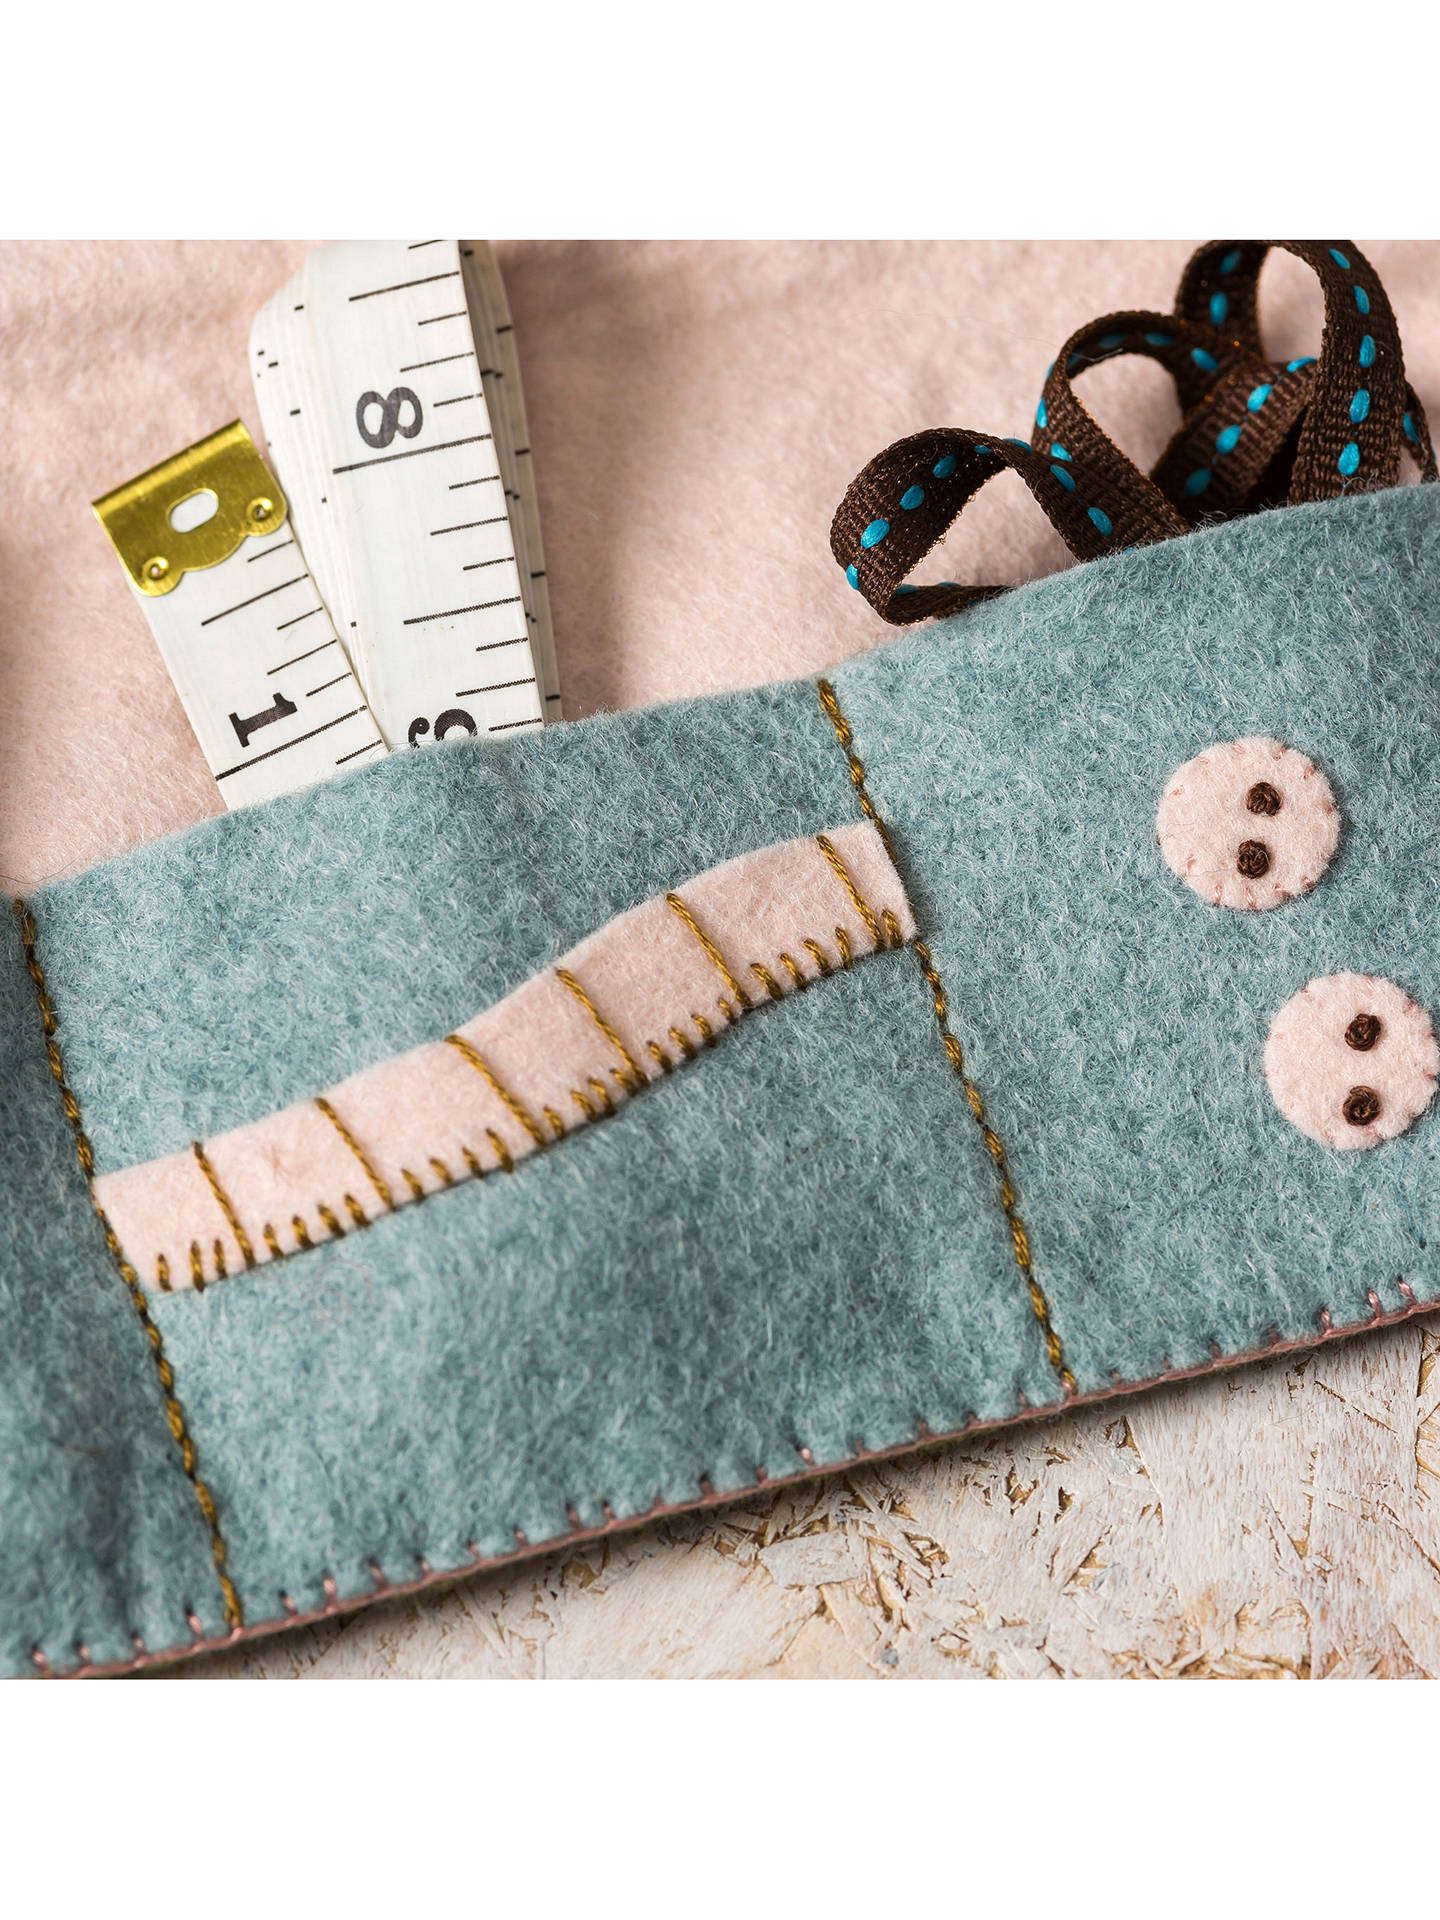 Buy Corinne Lapierre Felt Sewing Roll Craft Kit Online at johnlewis.com